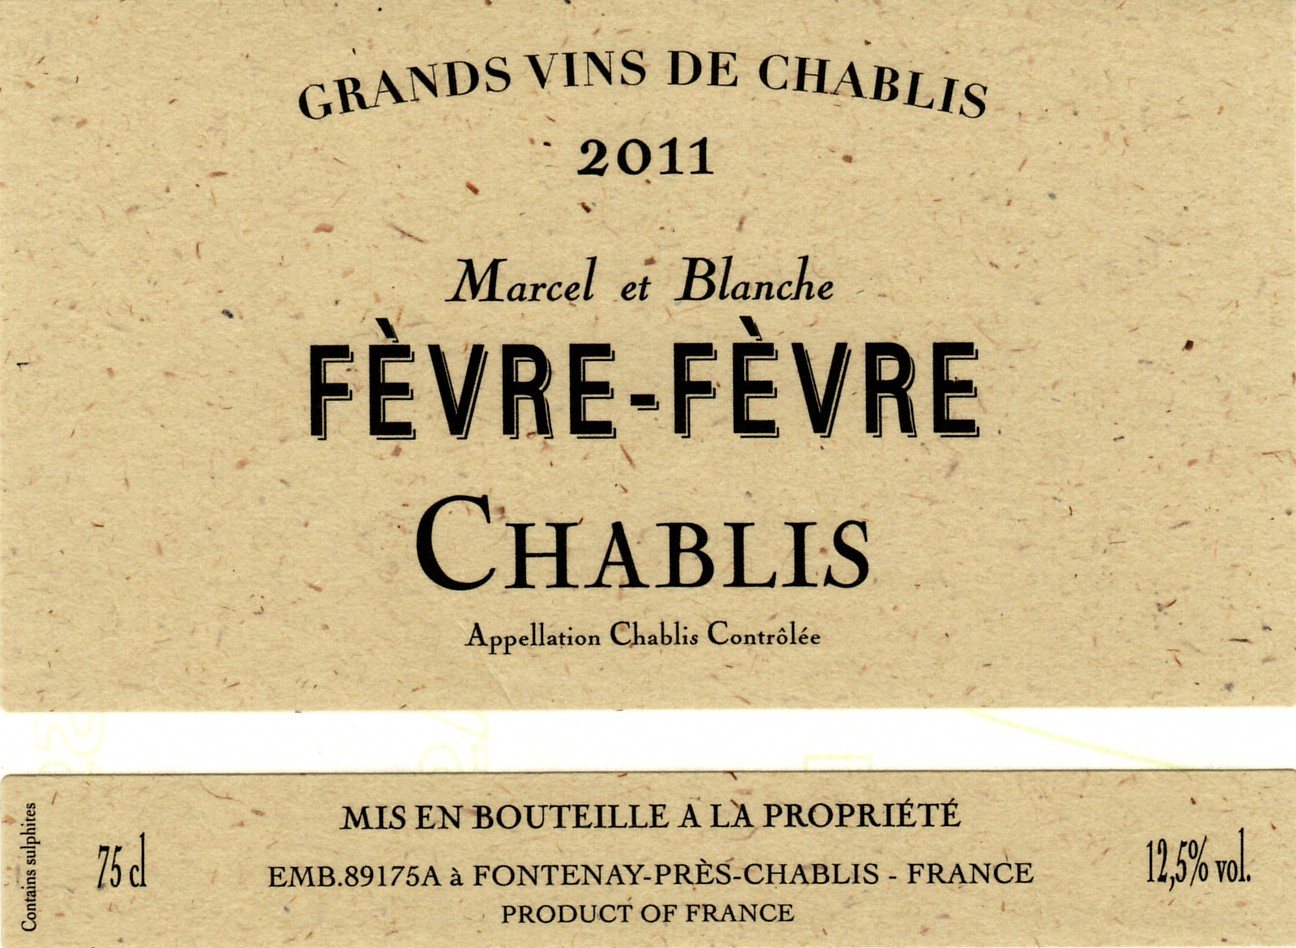 This Chablis has lovely notes of smoke, gunflint, citrus and white peaches. It shows richness and depth for a village level wine. Layers of fruit build to the lingering, lengthy finish. This is a balanced, harmonious Chablis!